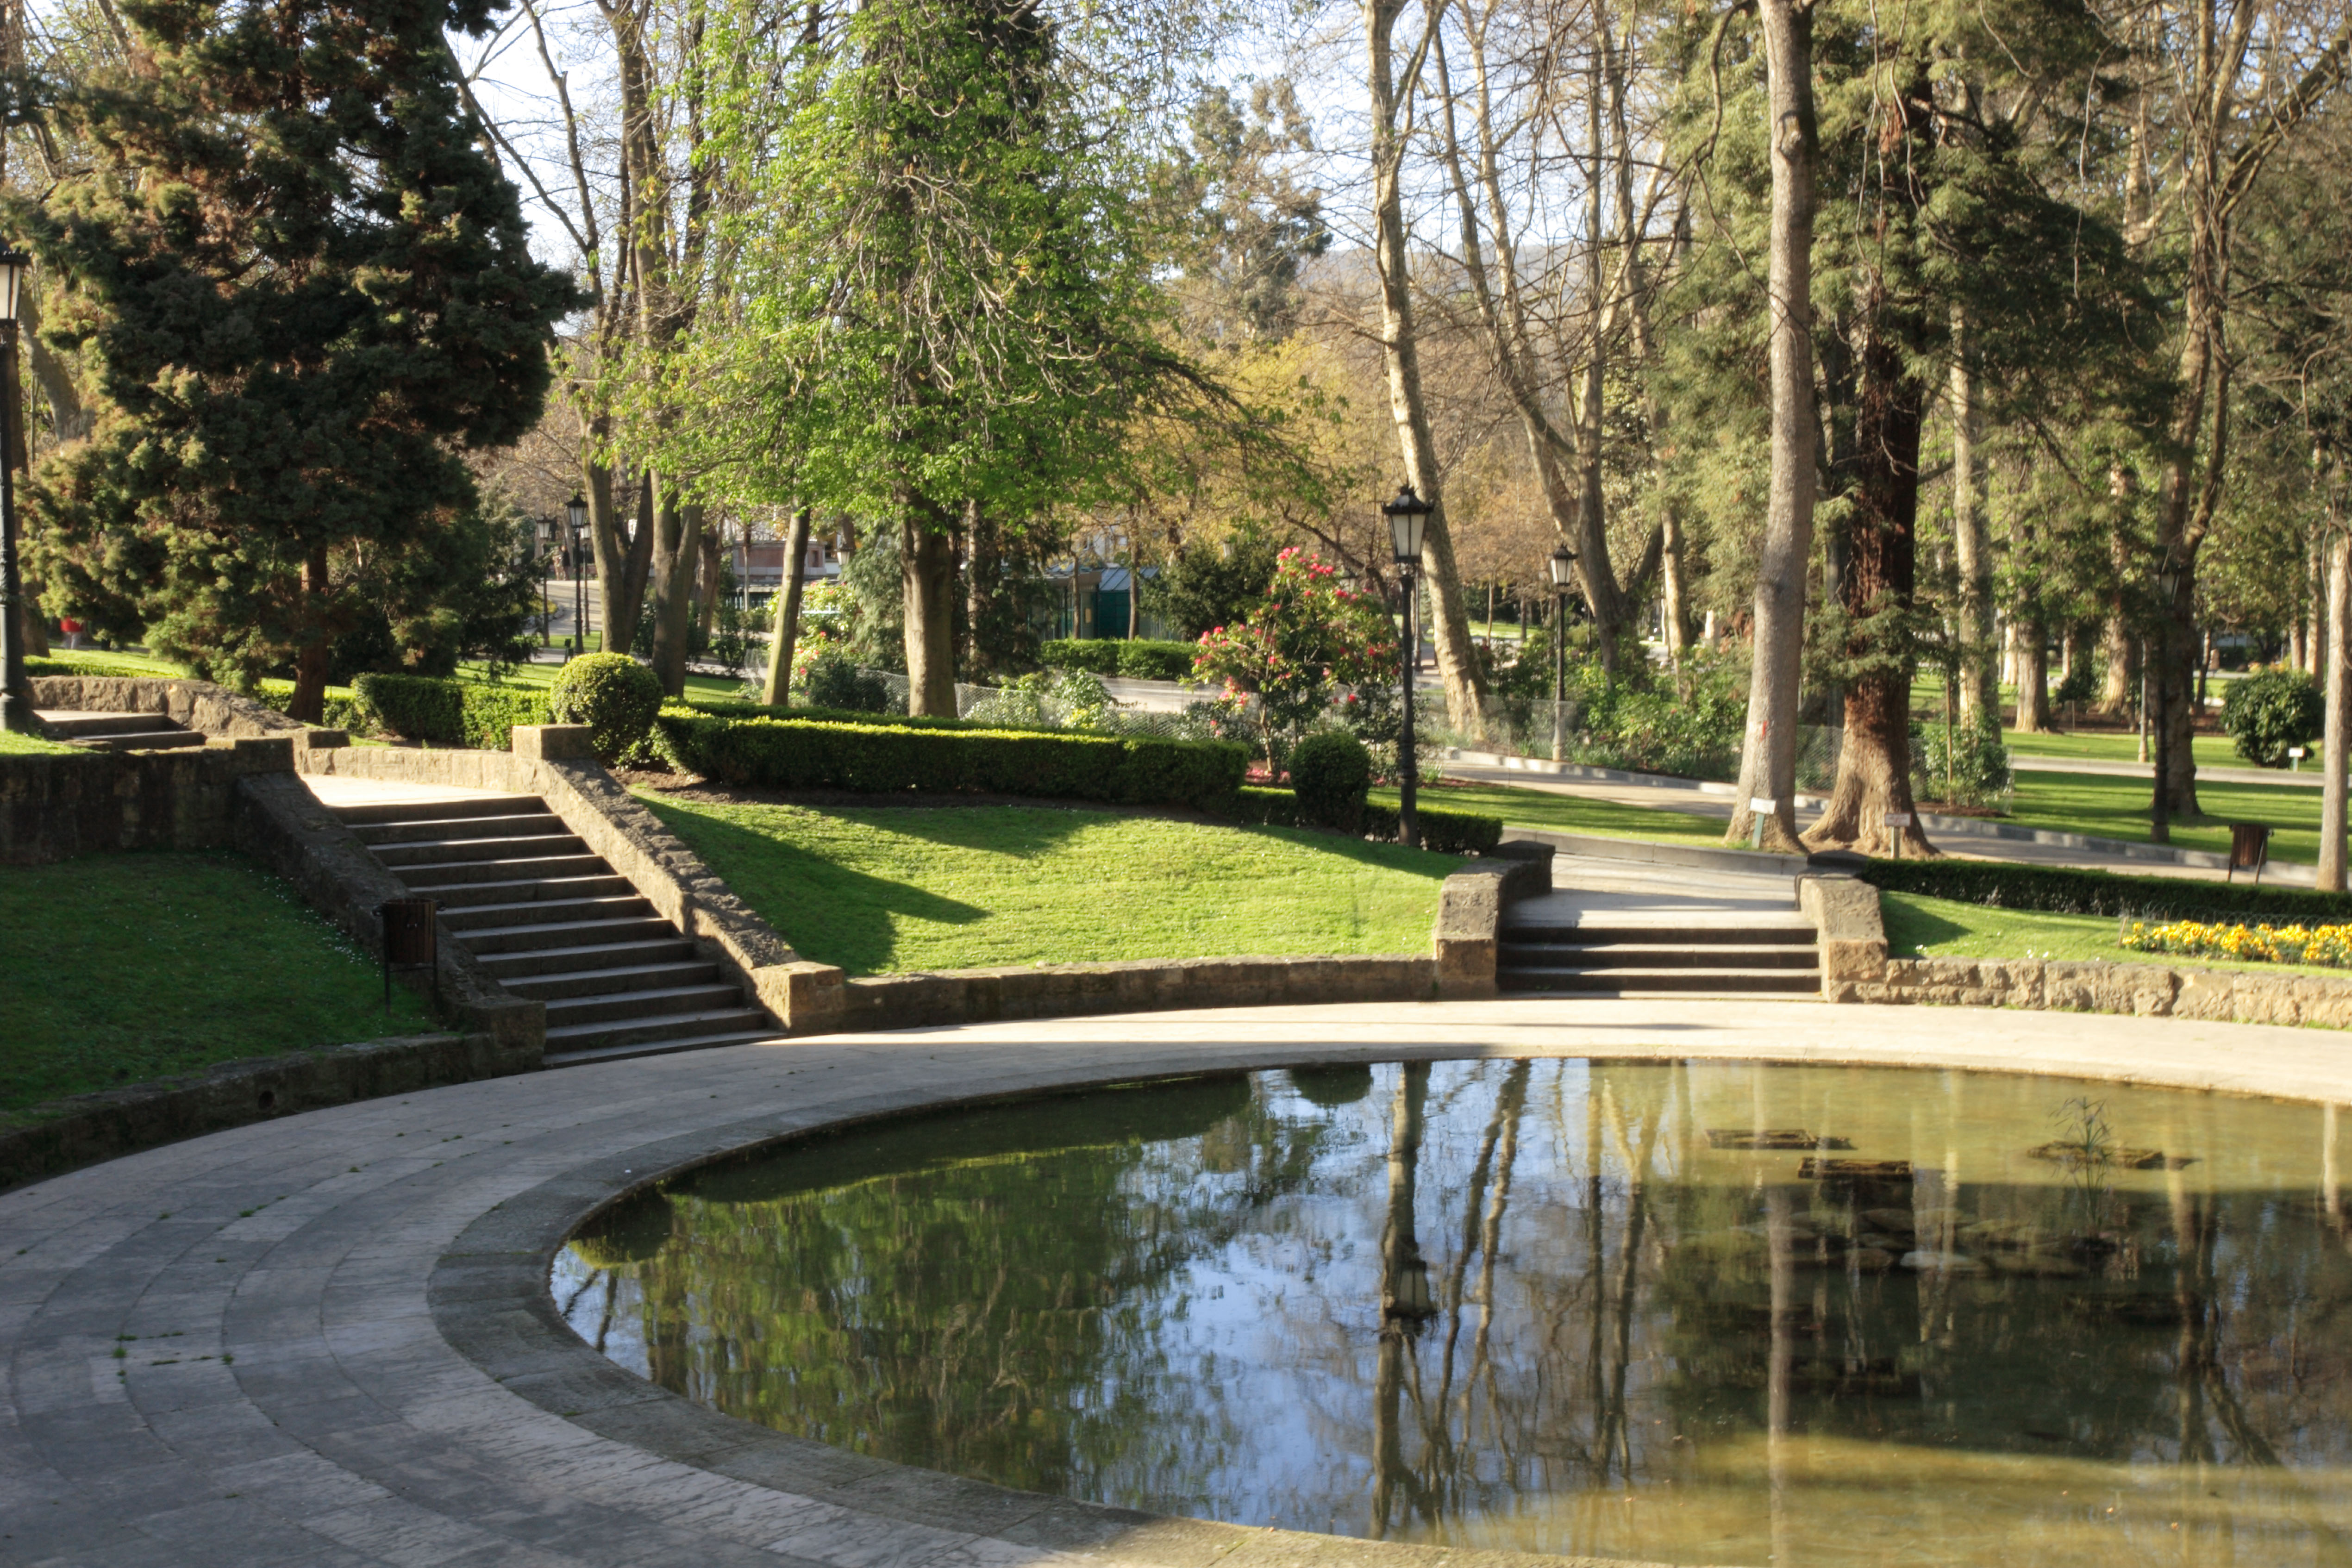 View over a round pond in the San Francisco Park in Oviedo Spain. Image shot 11/2008. Exact date unknown.